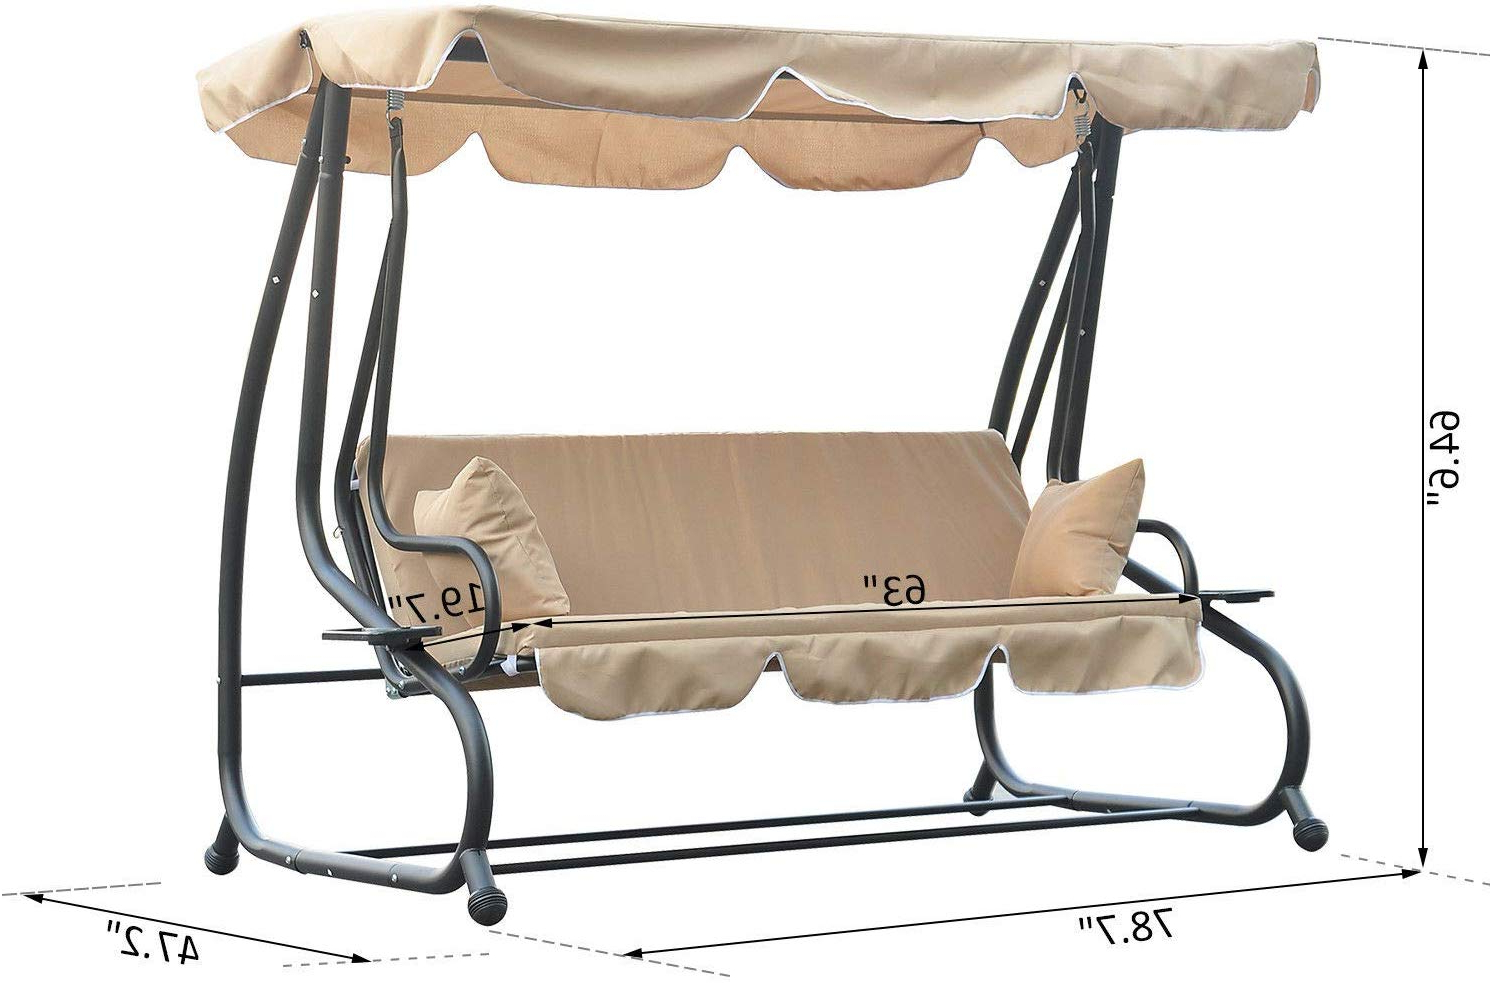 2 Person Hammock Porch Swing Patio Outdoor Hanging Loveseat Canopy Glider Swings Intended For Favorite Amazon : Allblessings Patio 3 Seated Porch Swing Hammock (View 17 of 30)